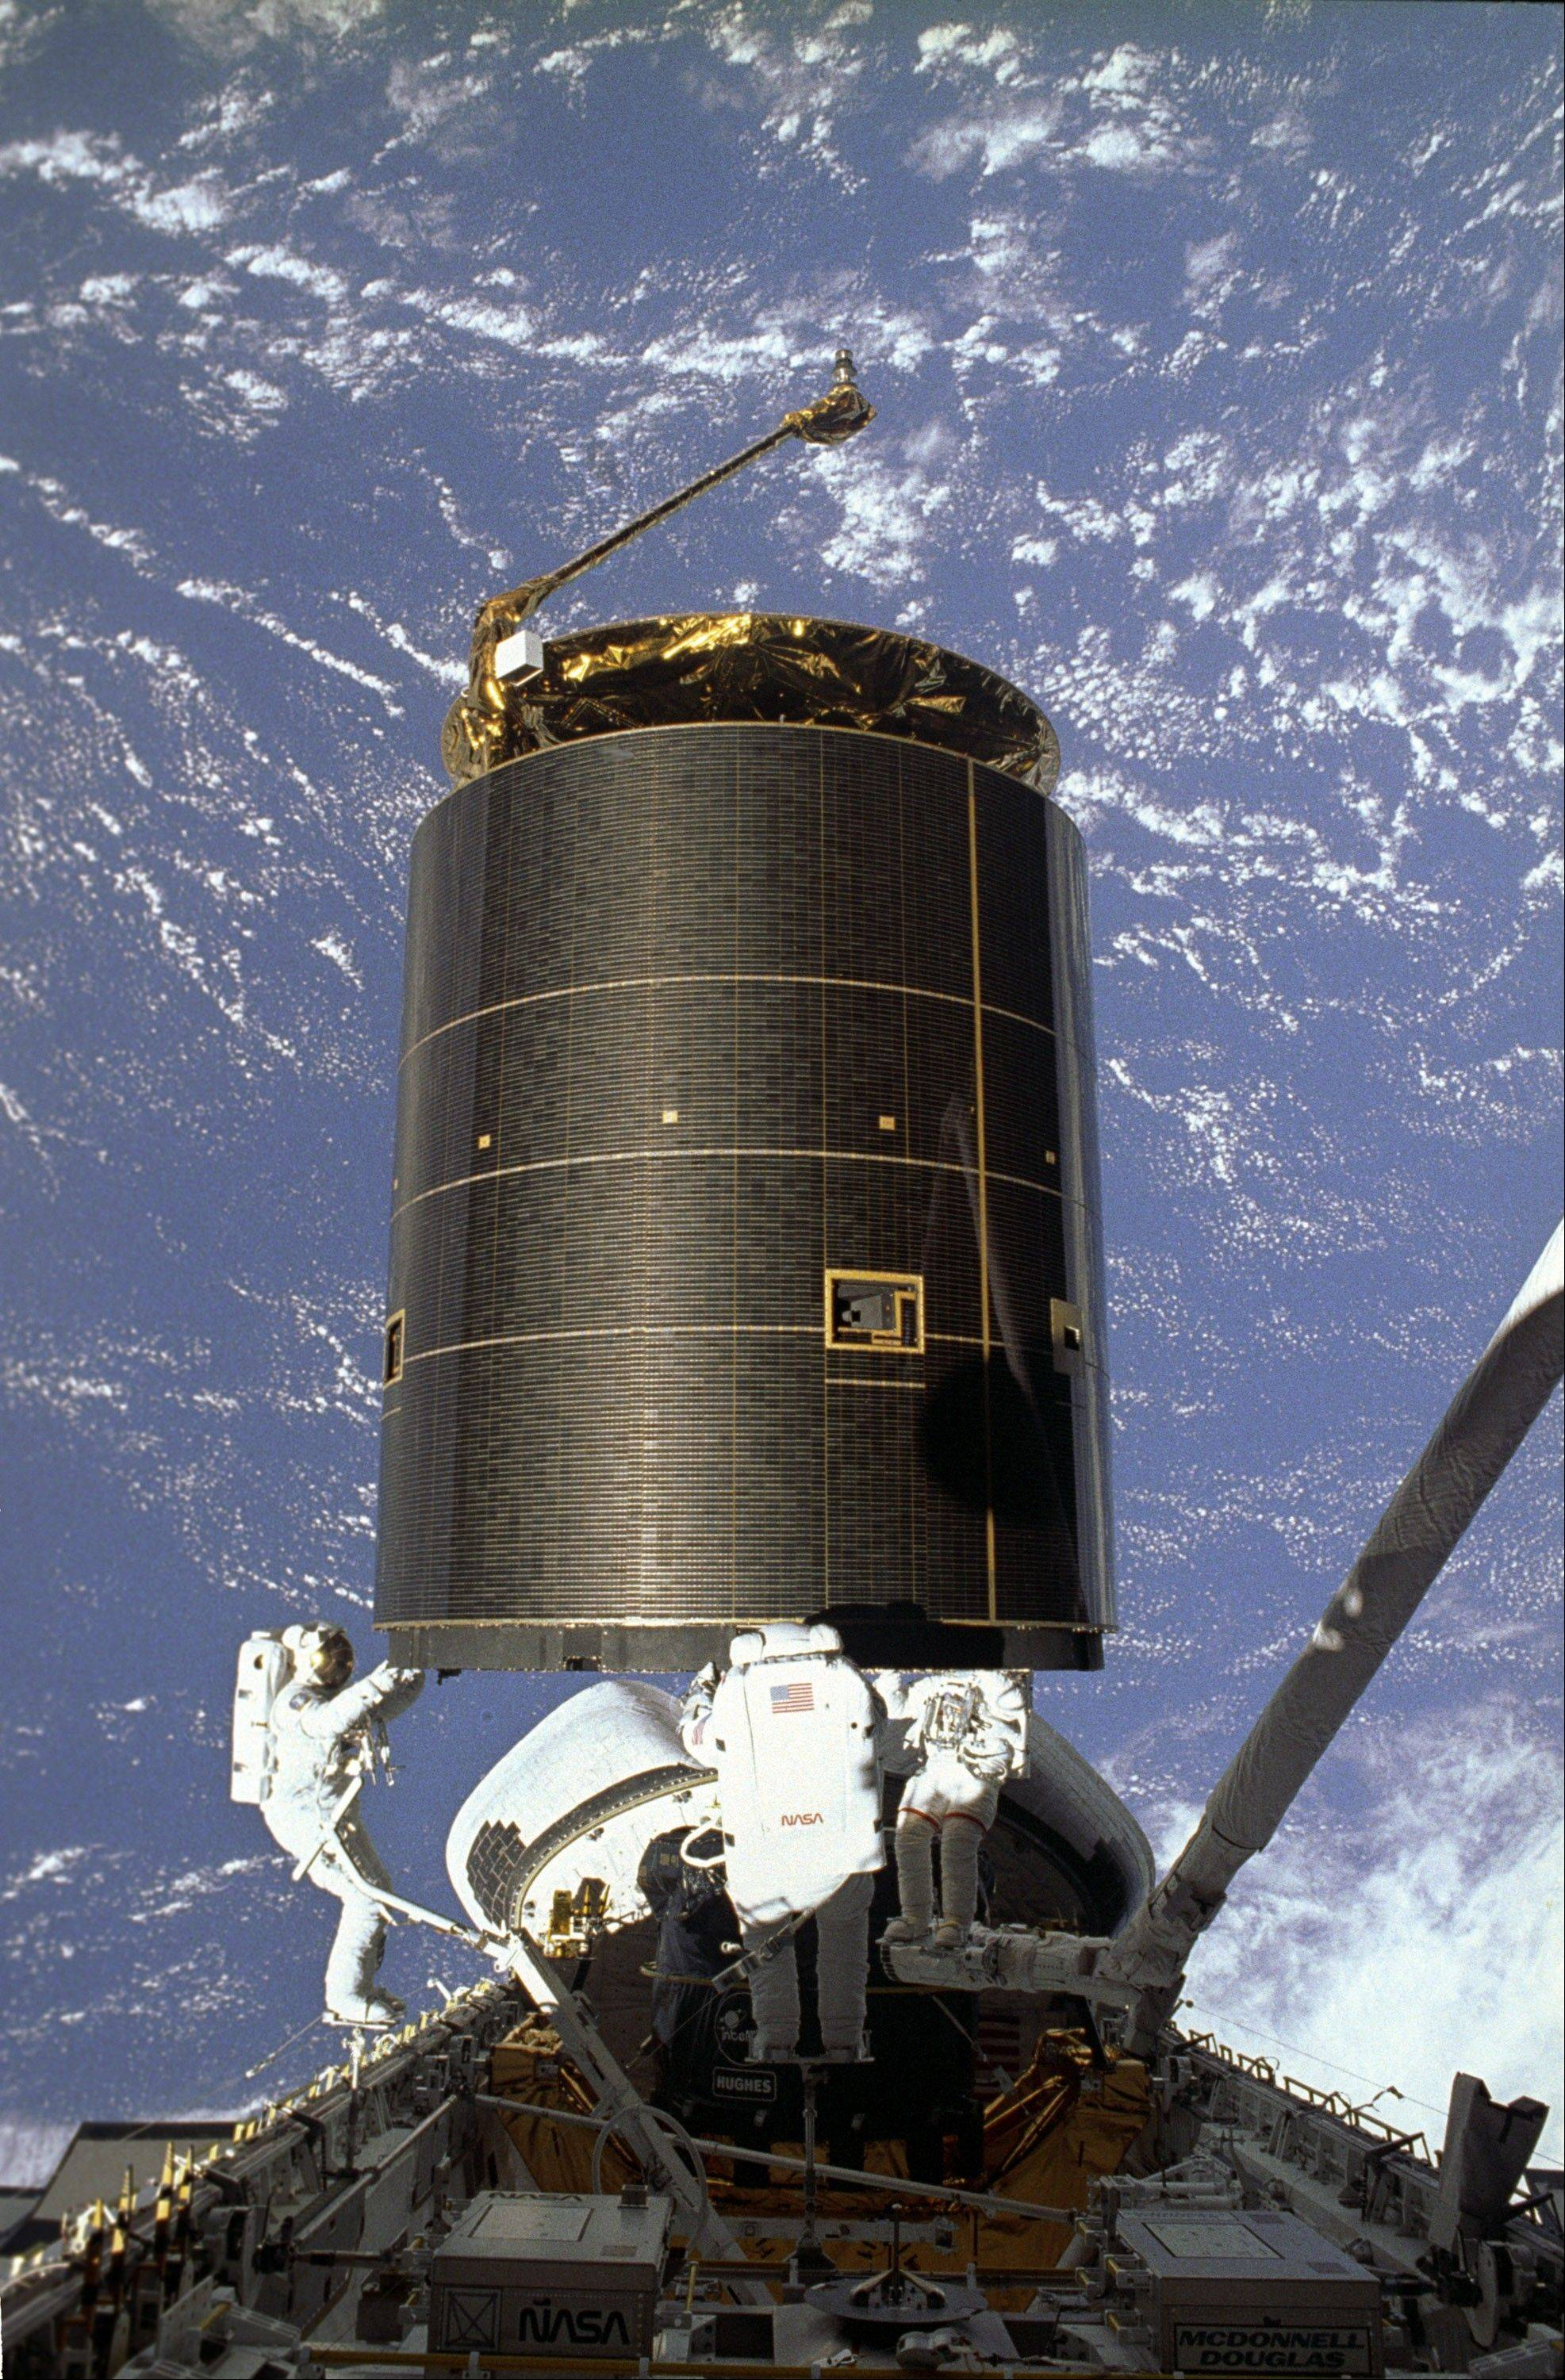 In this May 13, 1992 picture made available by NASA, astronauts Richard Hieb, Thomas Akers and Pierre Thuot grab the Intelsat VI satellite from the ledges of the payload bay of the space shuttle Endeavour in the first three-man spacewalk. The satellite had been stuck at a uselessly low orbit for more than two years.